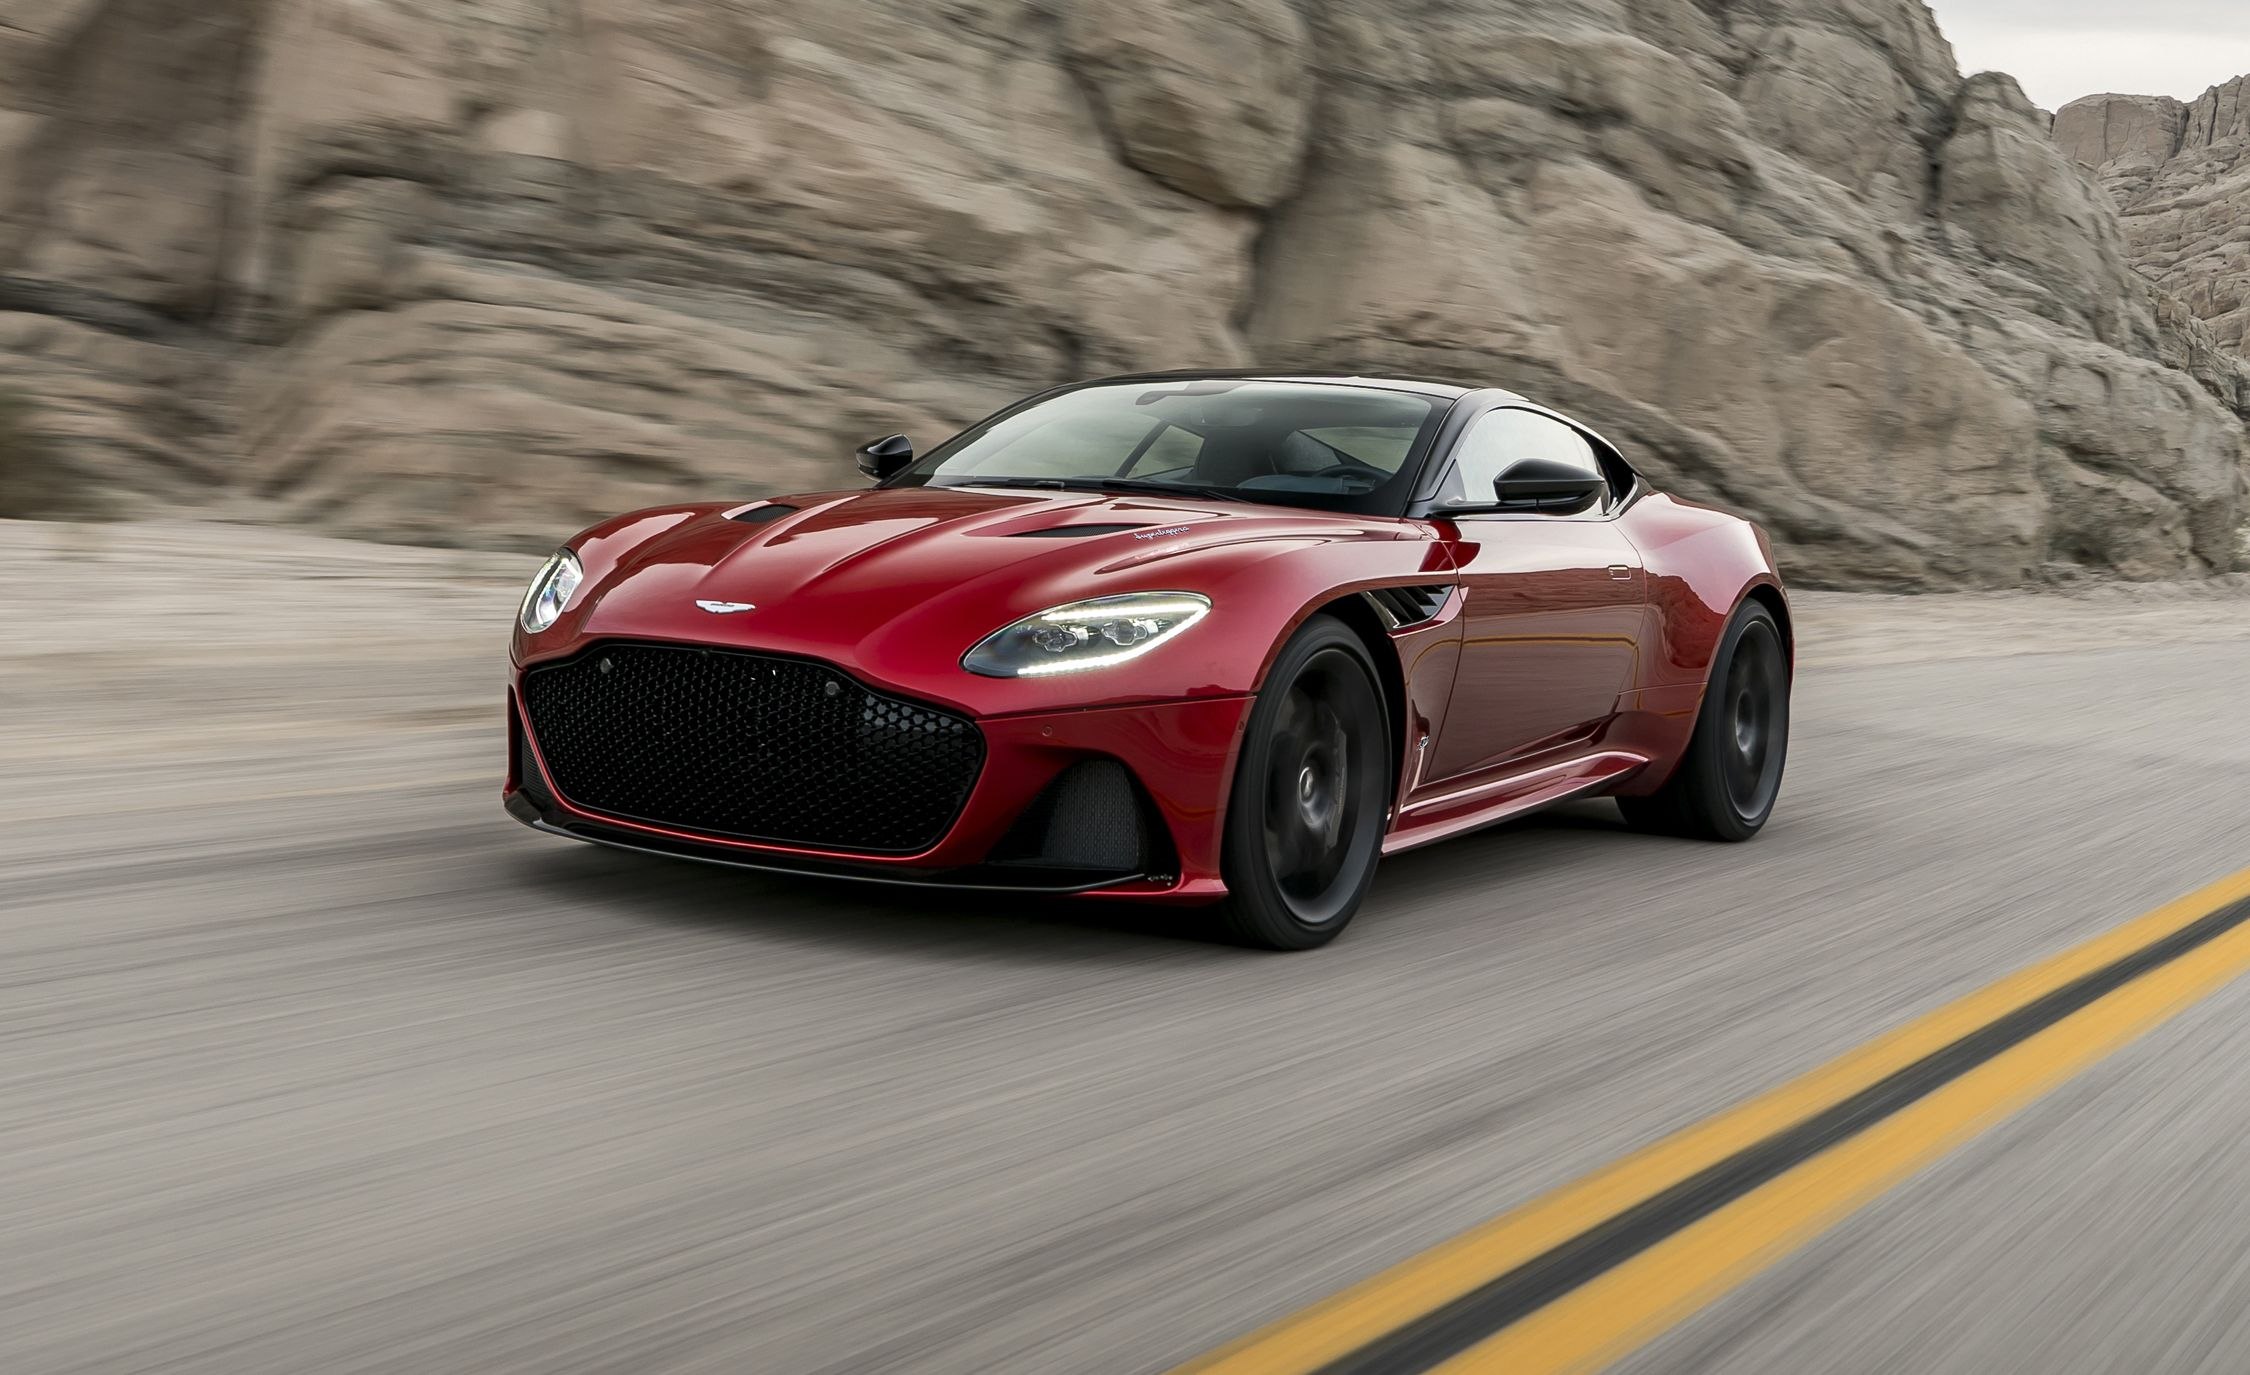 2019 aston martin dbs superleggera revealed! | news | car and driver